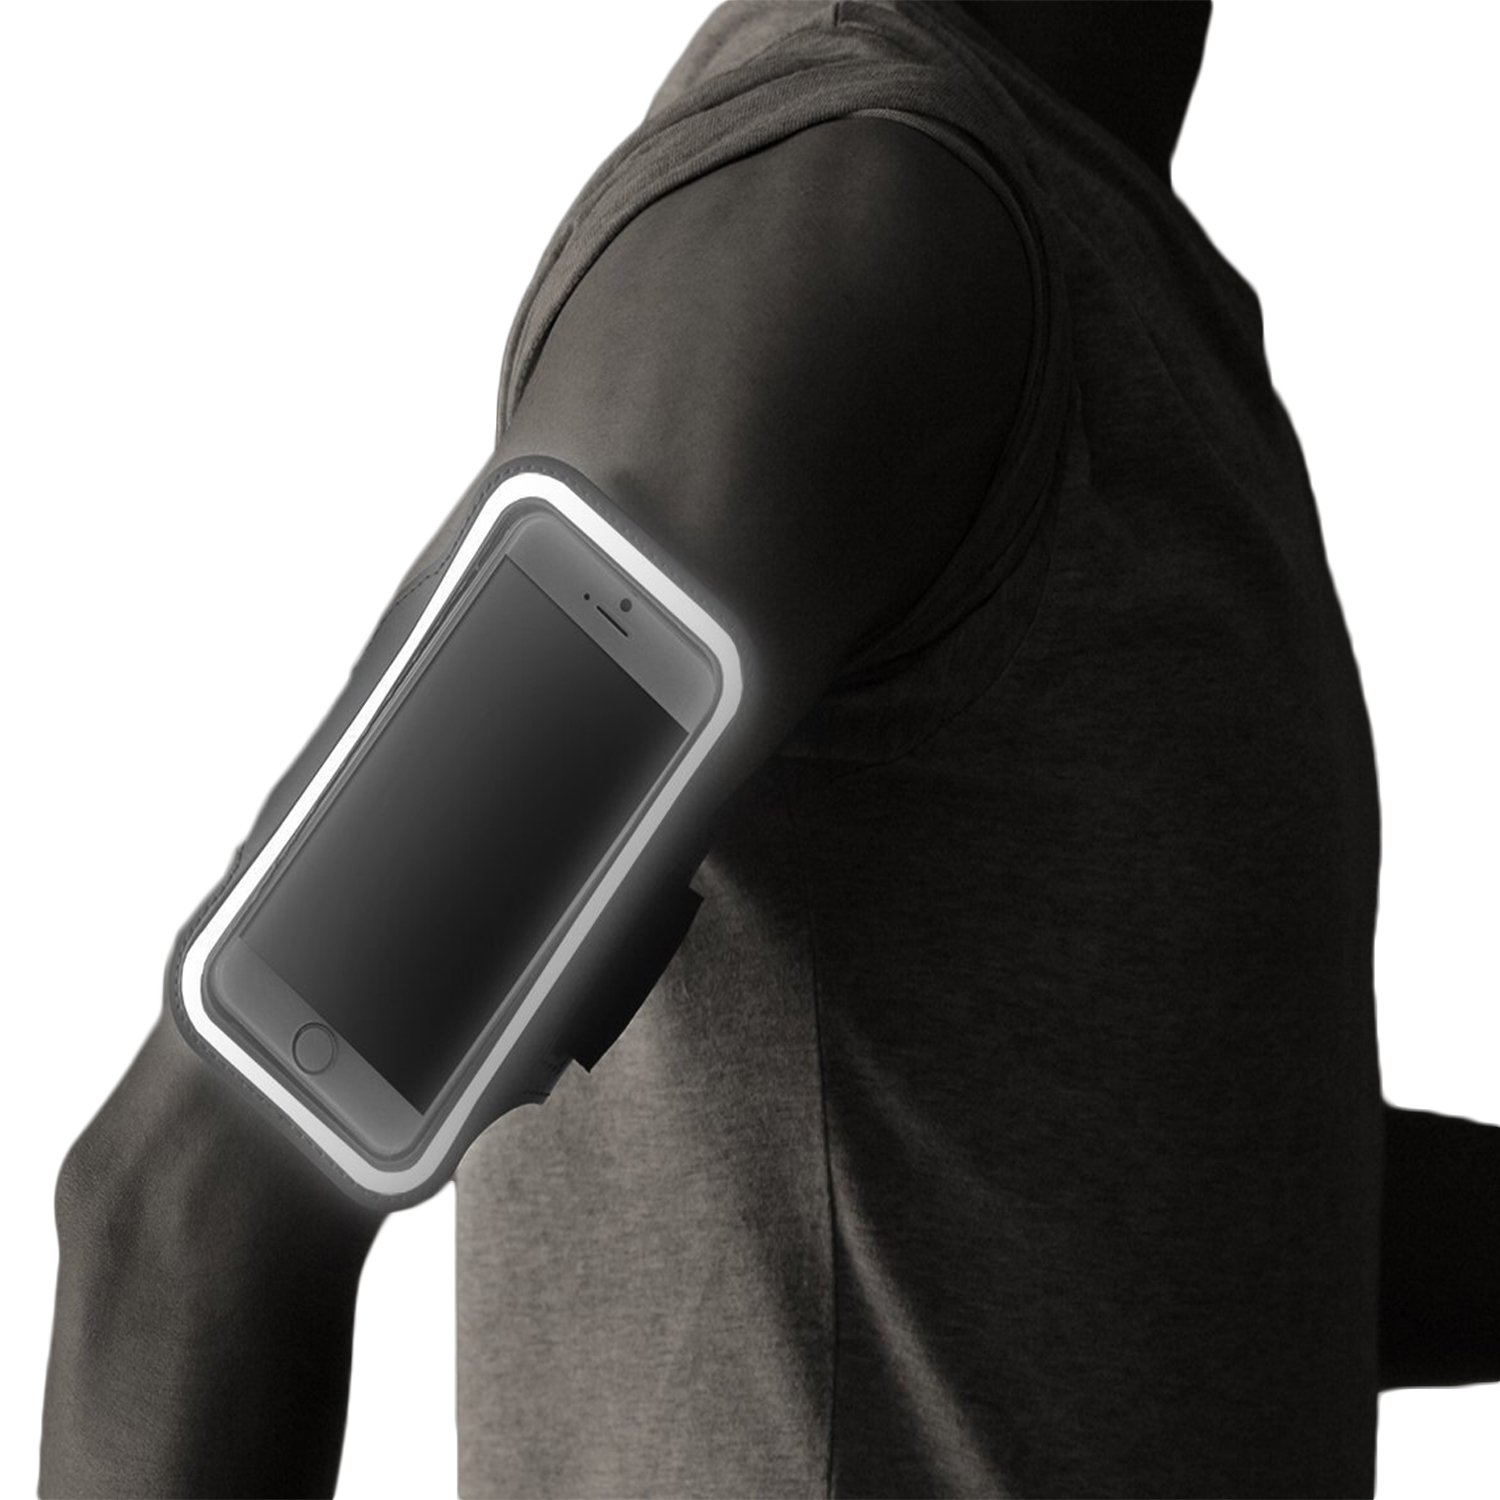 iPhone 7/8 PLUS Running Armband with Fingerprint ID Access. Sports Phone Arm Case Holder for Small 9'' - Large 20'' Arms. Designed for Runners, Gym Workouts & Extreme Exercise by Revere Sport (Image #6)